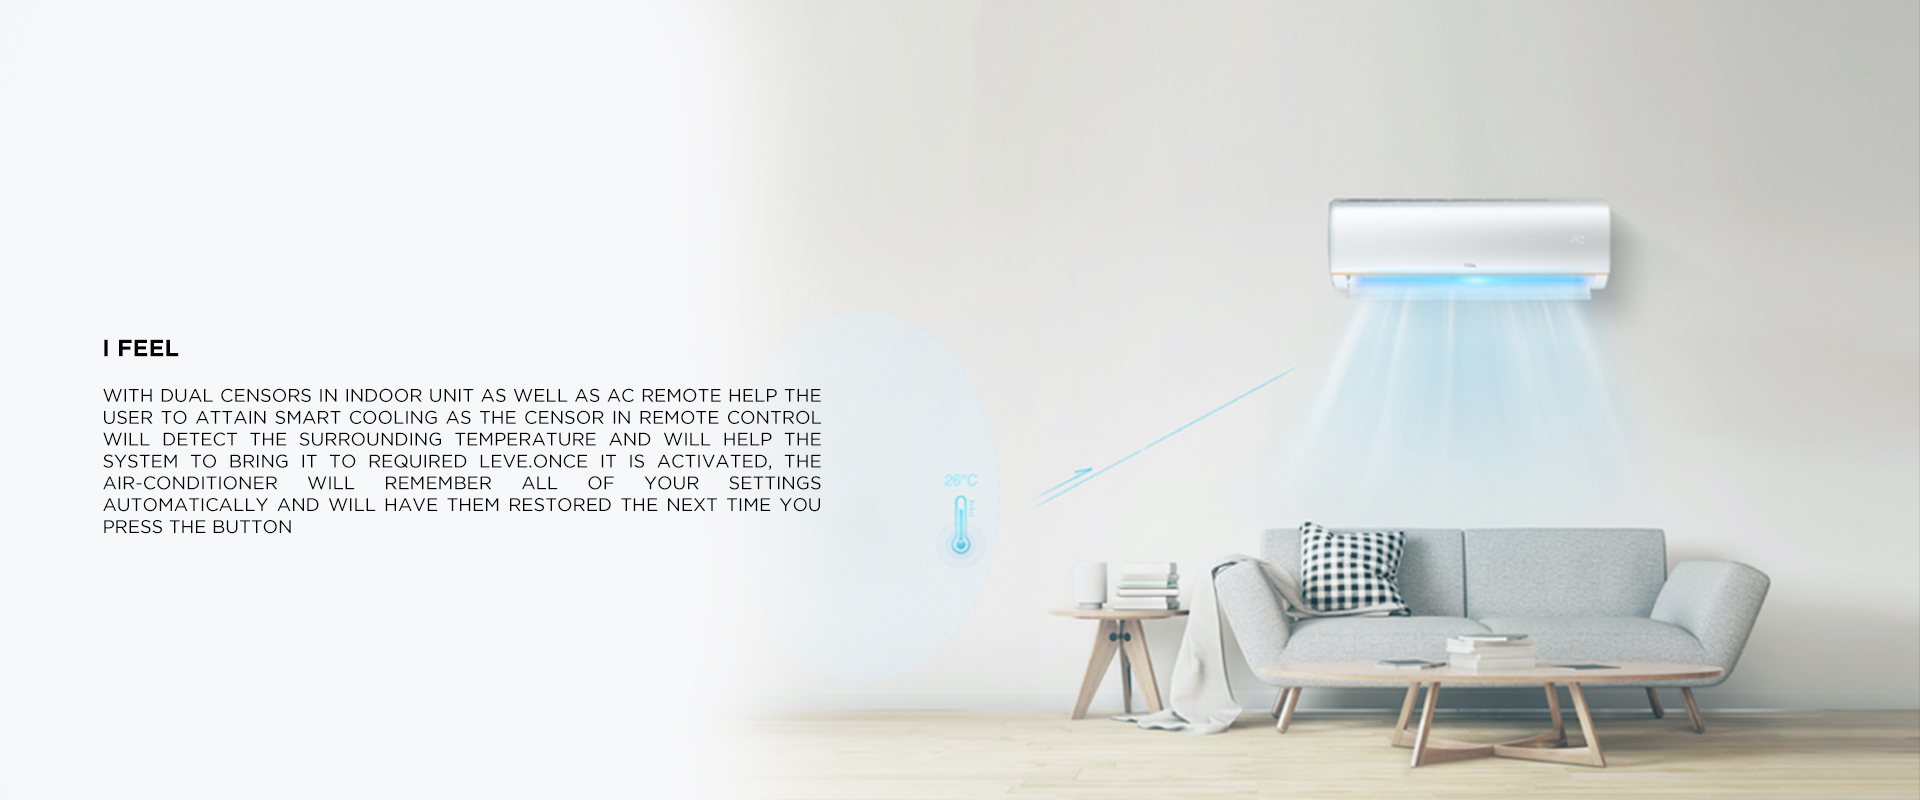 I set. I feel - With dual censors in Indoor unit as well as AC remote help the user to attain smart Cooling as the censor in remote control will detect the surrounding temperature and will help the system to bring it to required leve.Once it is activated, the air-conditioner will remember all of your settings automatically and will have them restored the next time you press the button